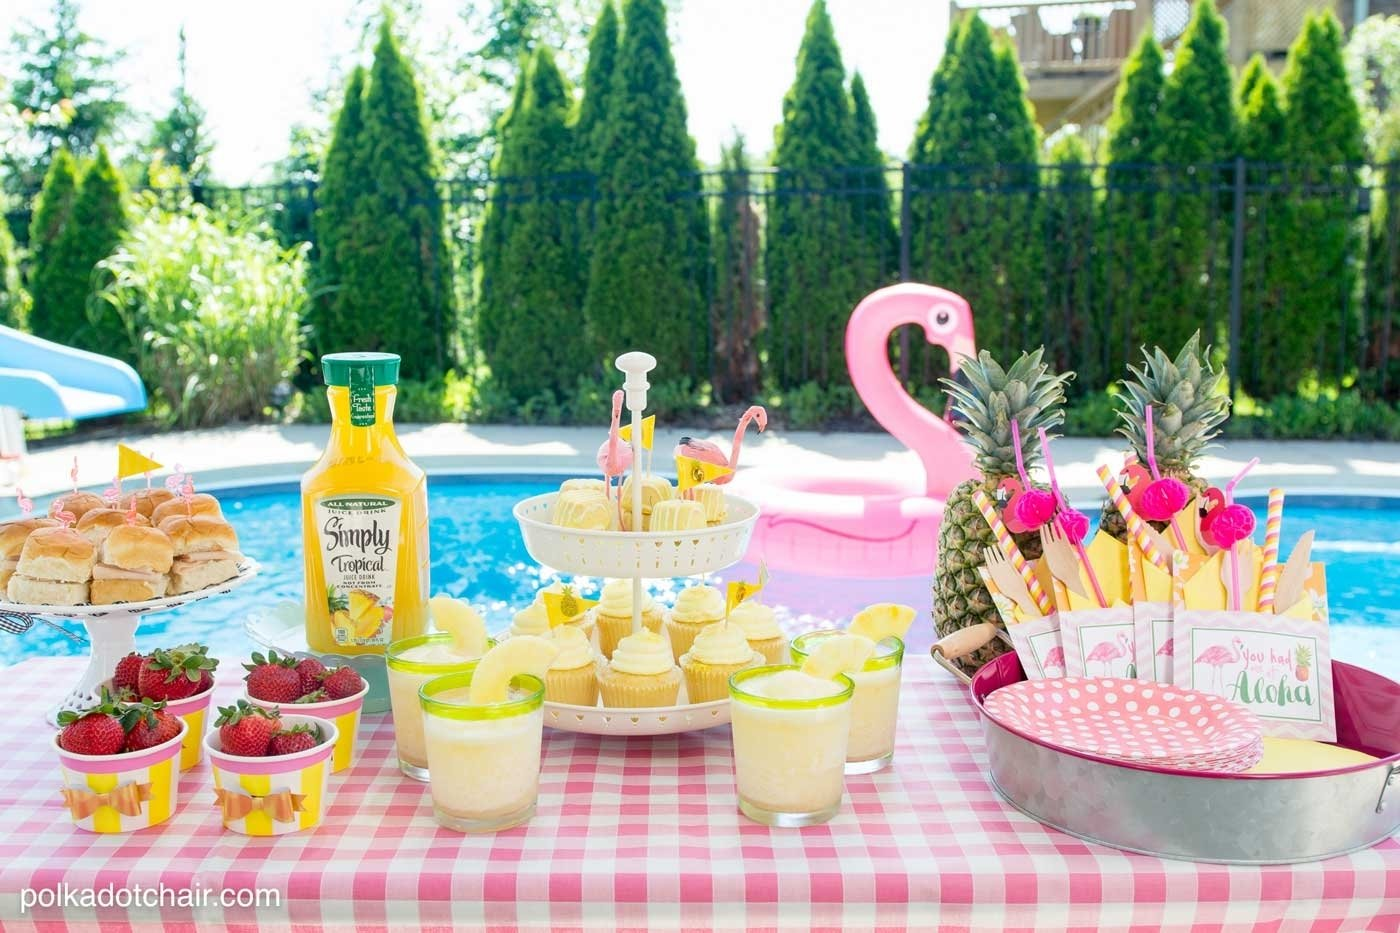 10 Great Ideas For A Pool Party summer backyard flamingo pool party ideas the polka dot chair 2020